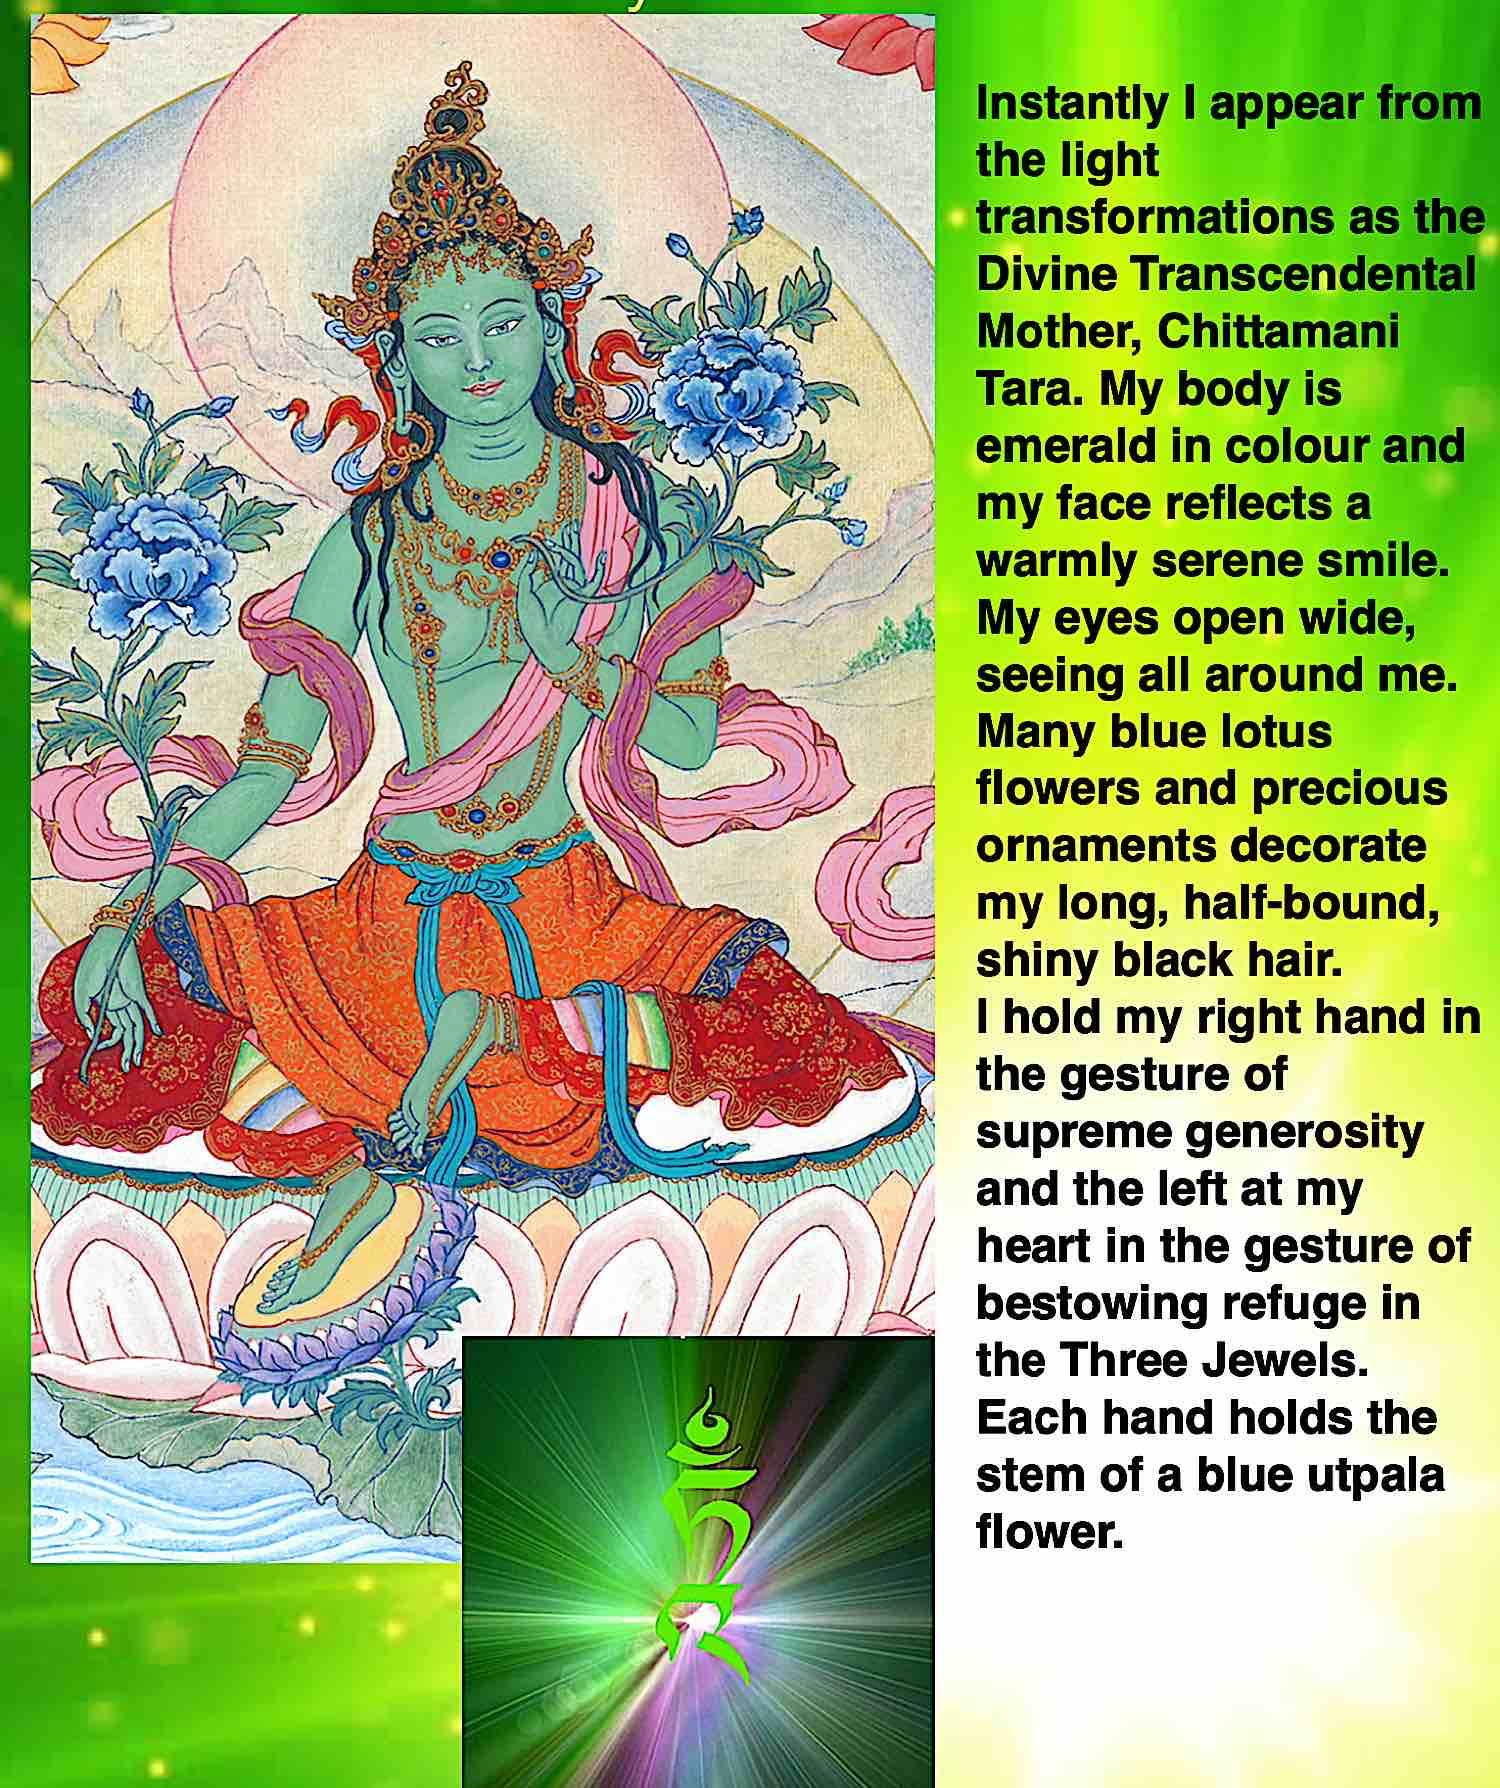 Buddha Weekly Visualization of Tara in images and words both Buddhism